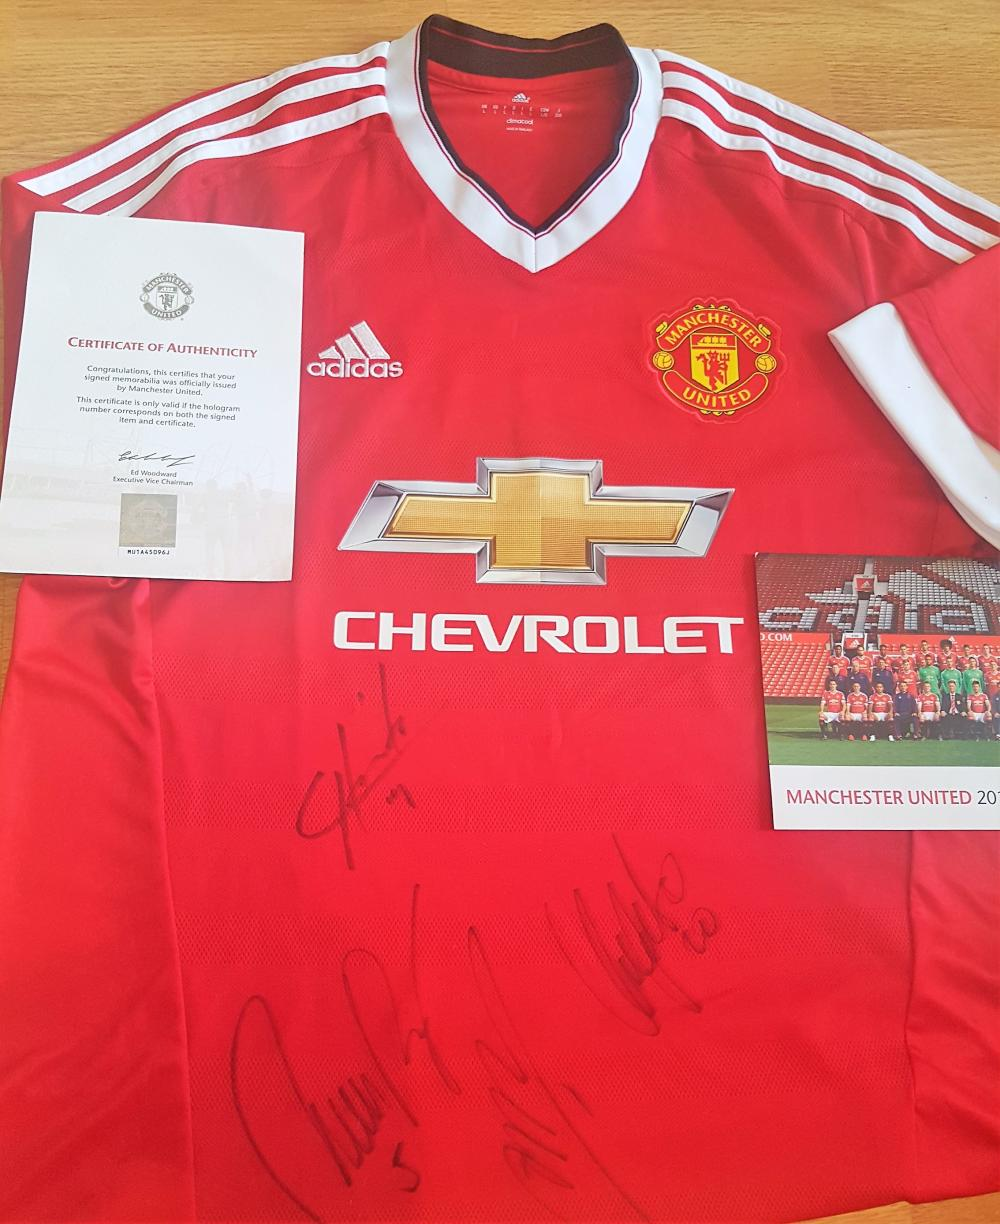 Lot 63 - Team Signed Football Shirt from Manchester United signed by 4 players